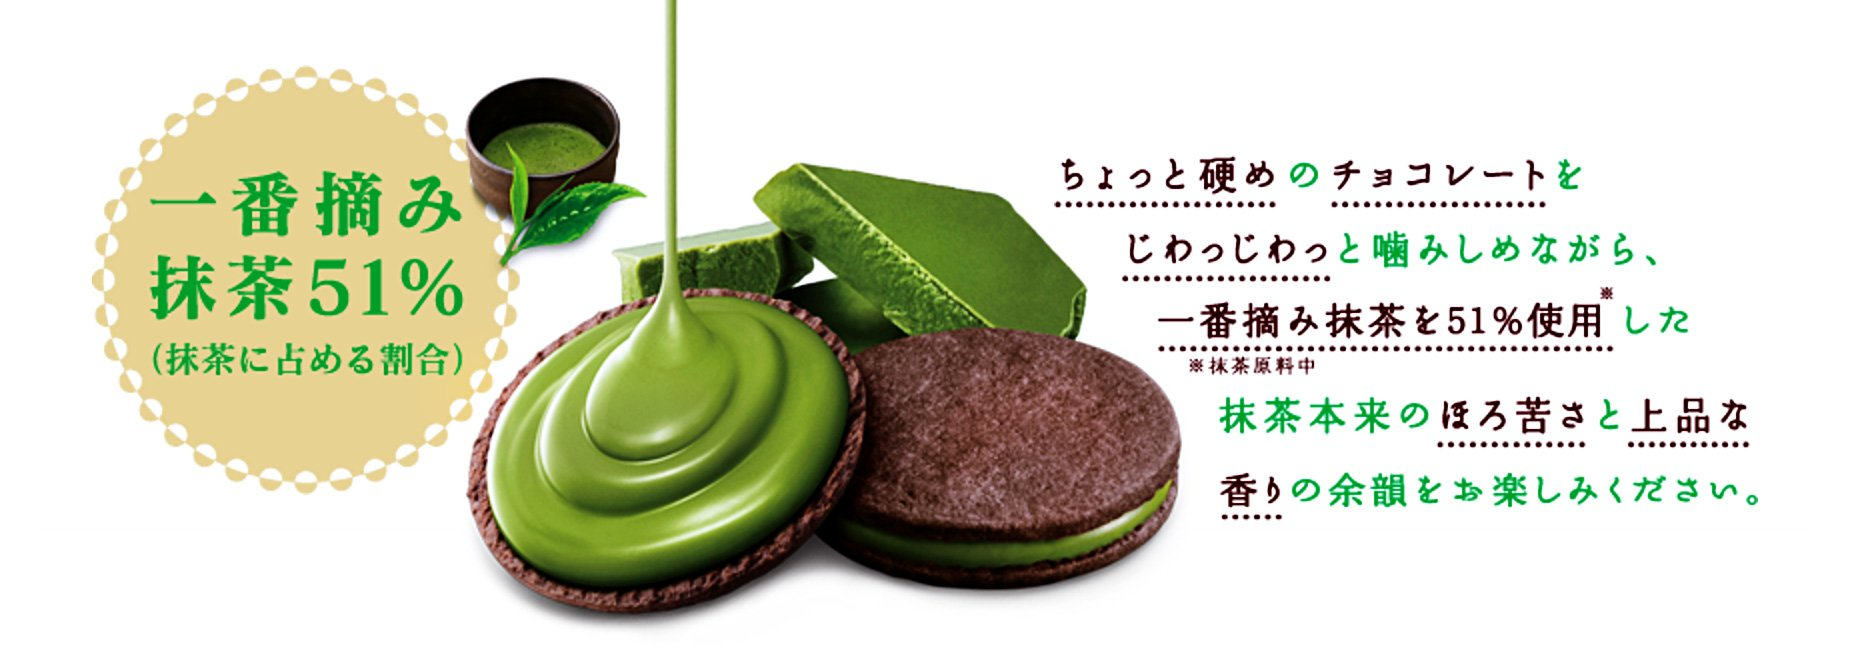 Meiji Rich Matcha Biscuits 6 Pcs x 5 Boxes